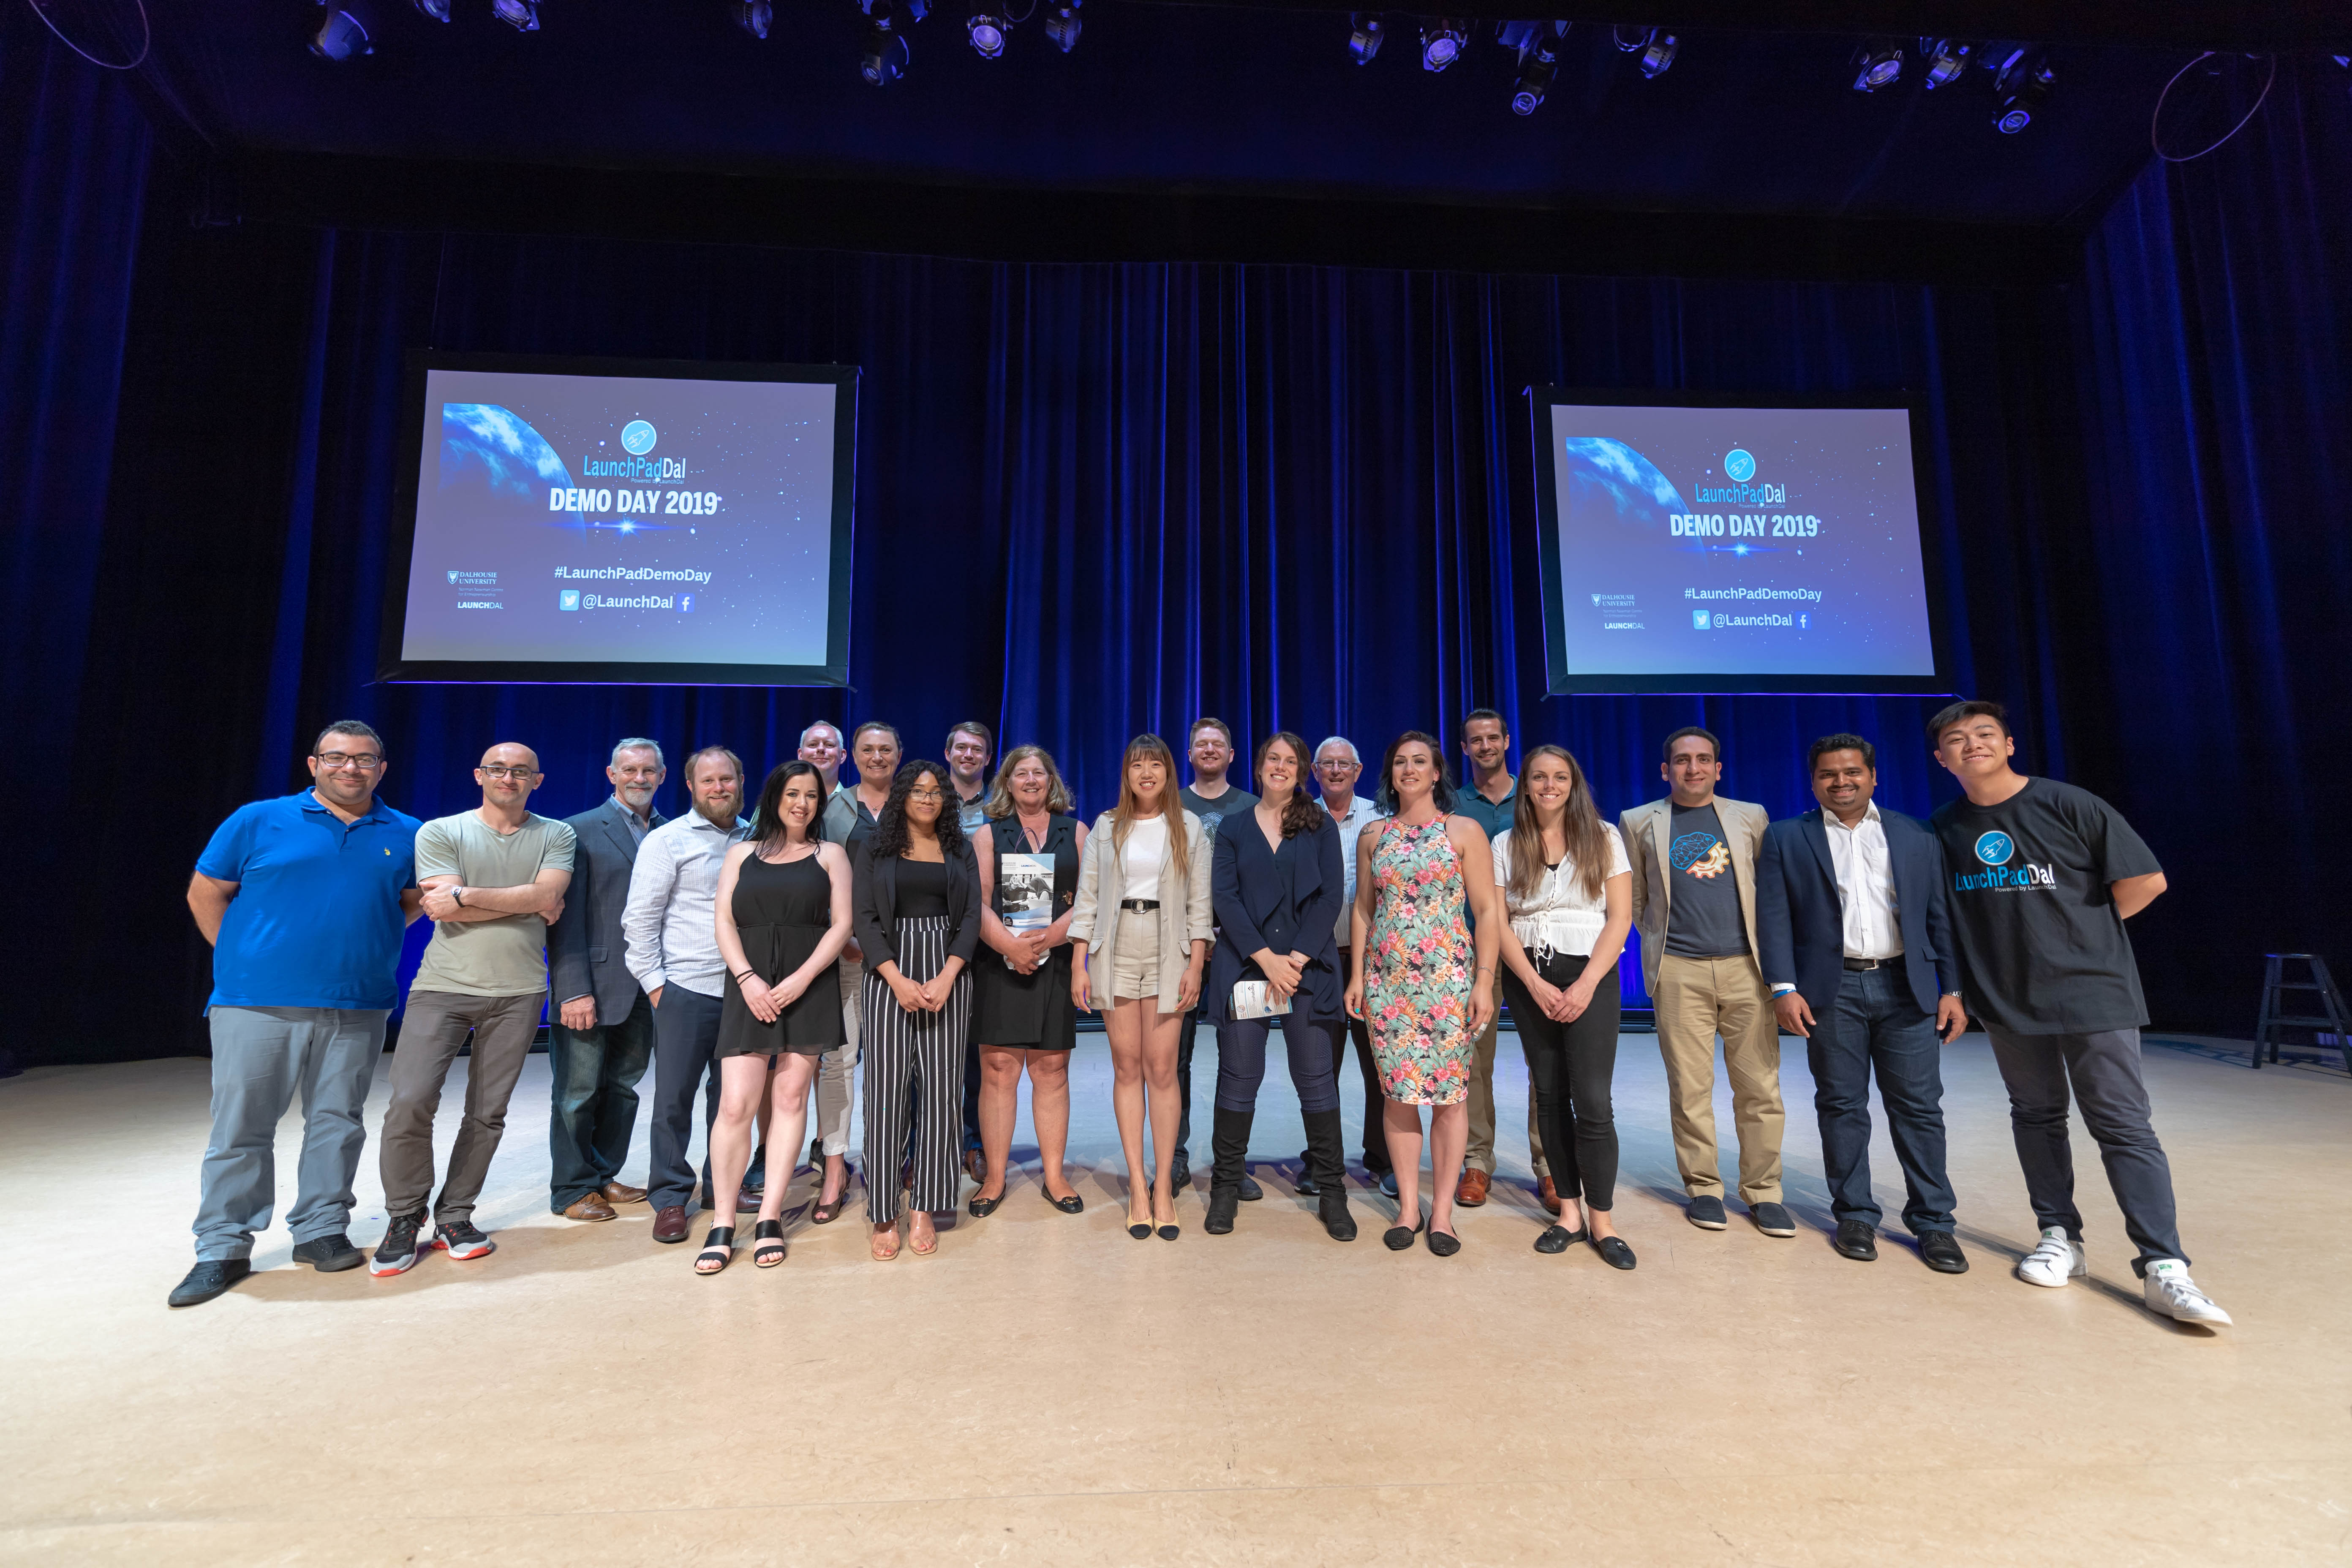 LaunchDal: Demo Day 2019